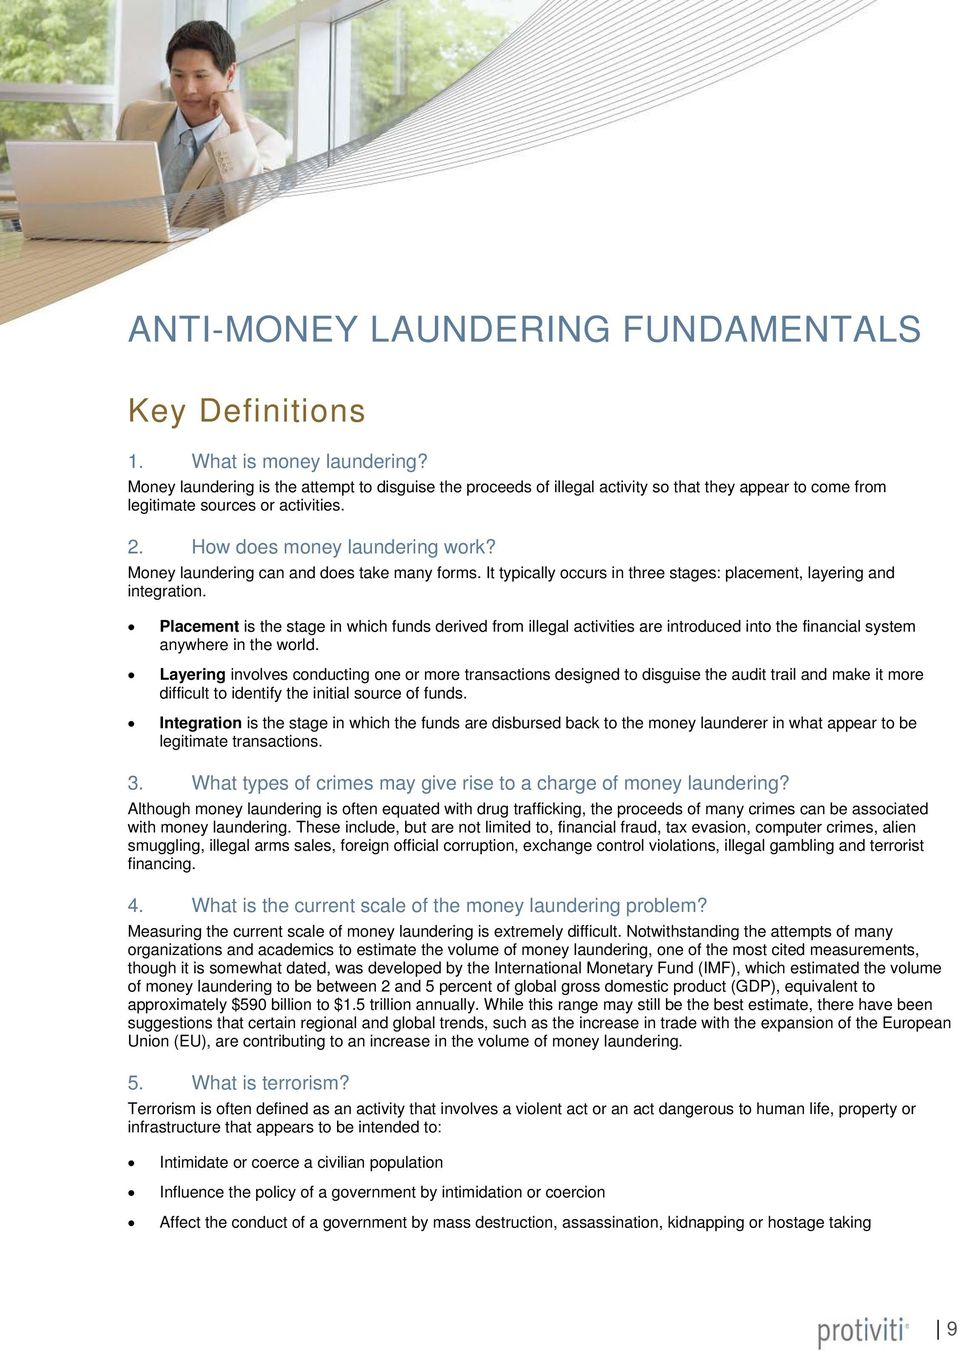 Mney laundering can and des take many frms. It typically ccurs in three stages: placement, layering and integratin.